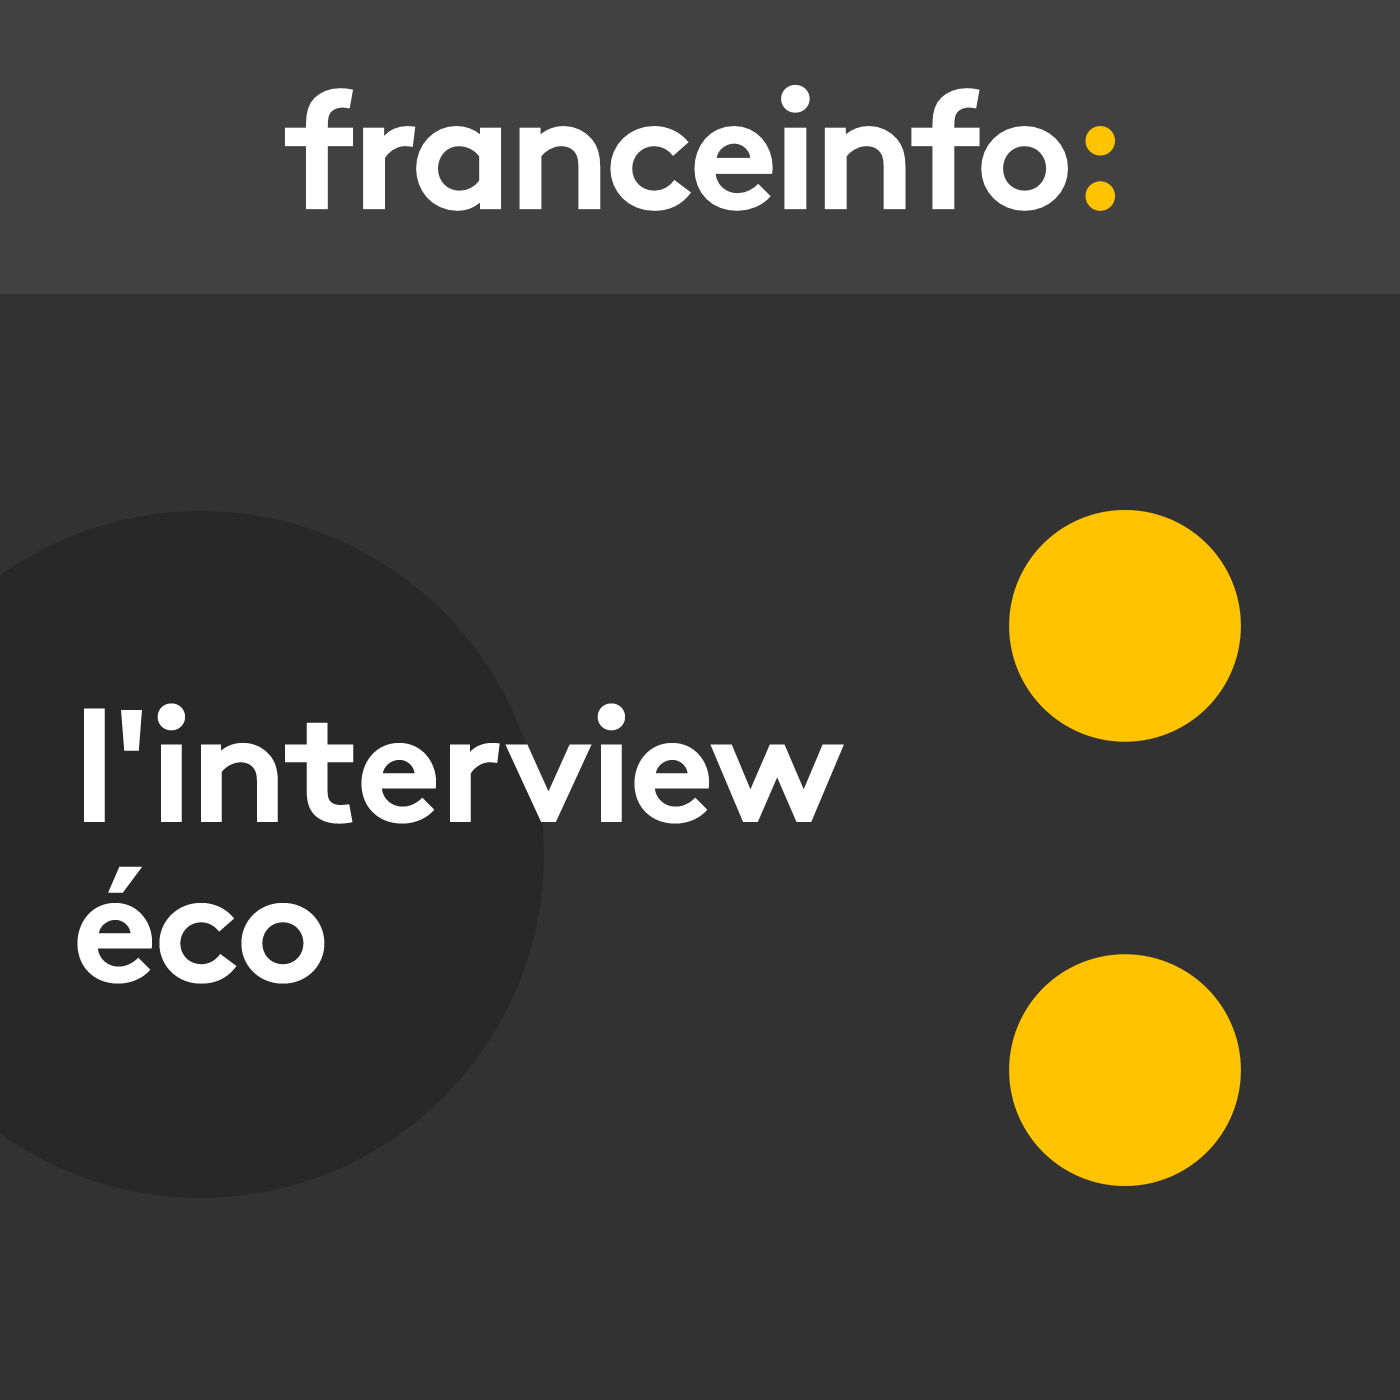 L'interview éco